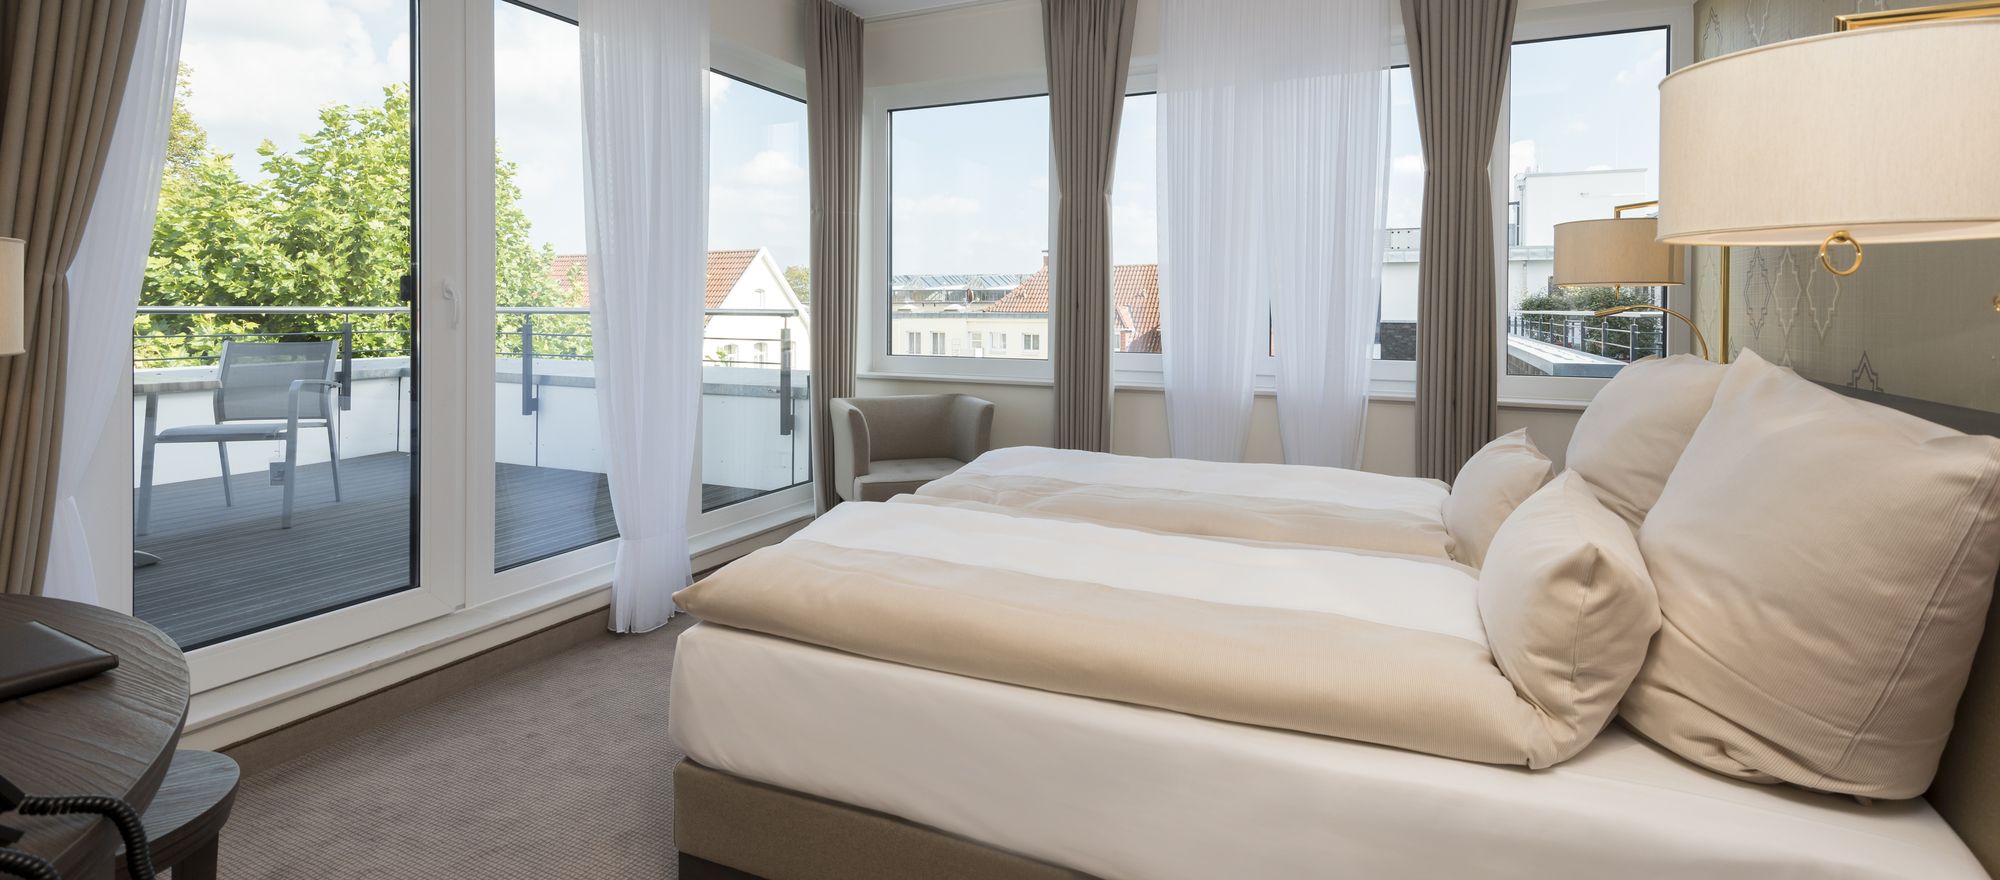 Luxurious suite in the Ringhotel Looken Inn in Lingen, 4-stars hotel in the Emsland